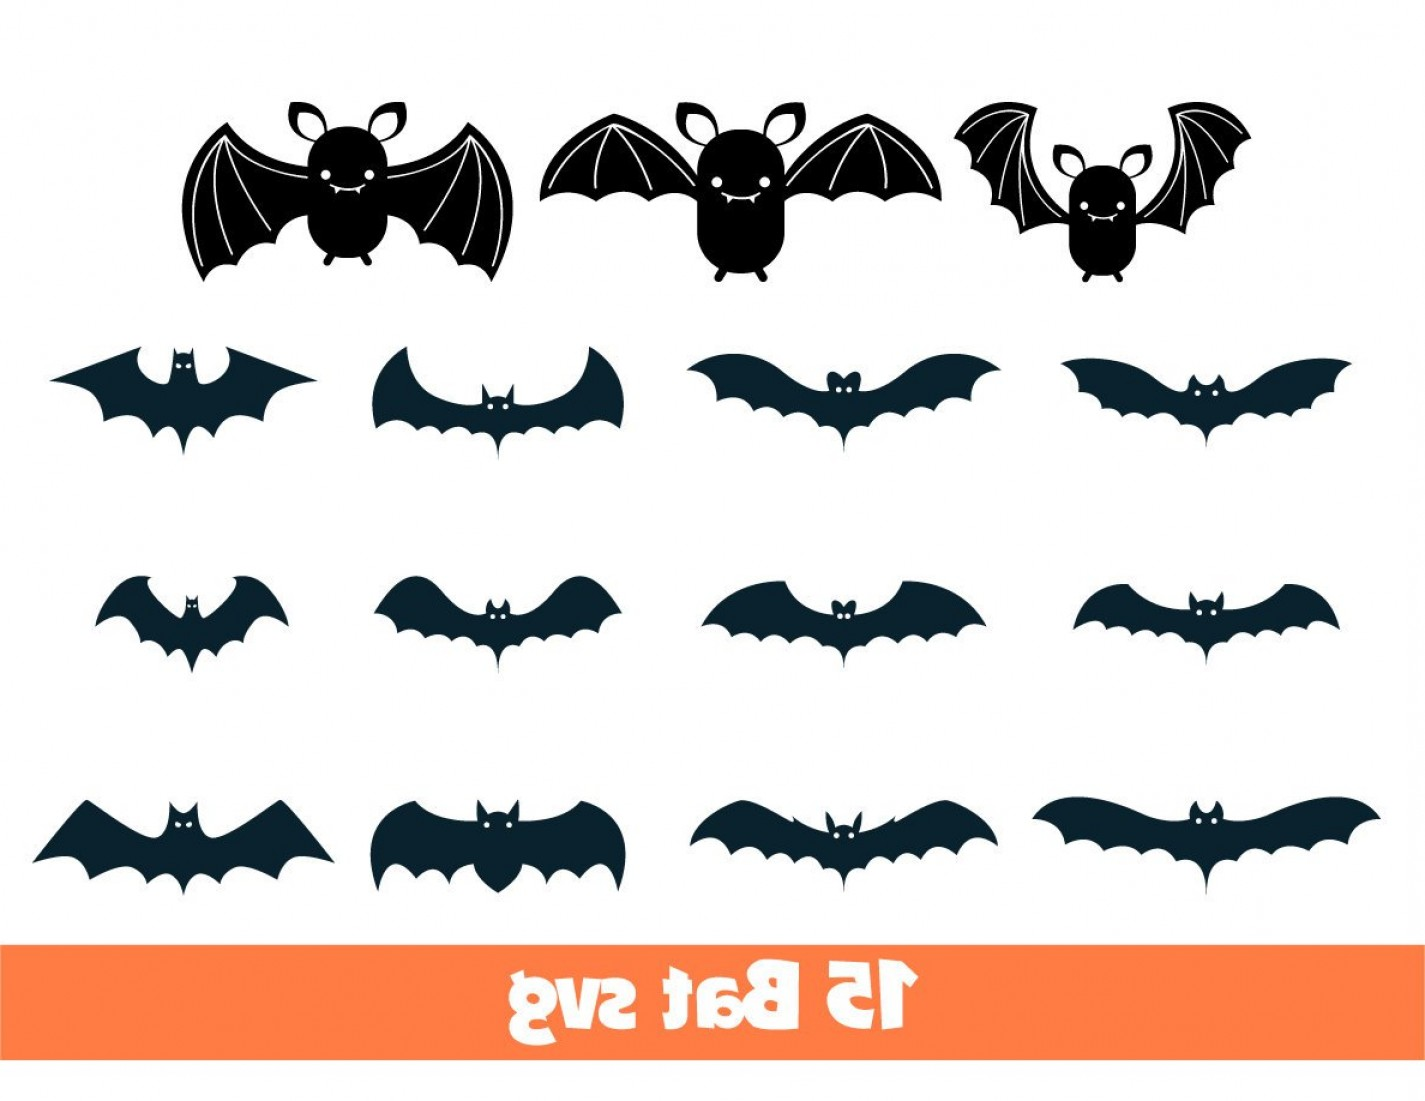 Bat Svg Bat Png Bat Eps Bat Vector Bat.